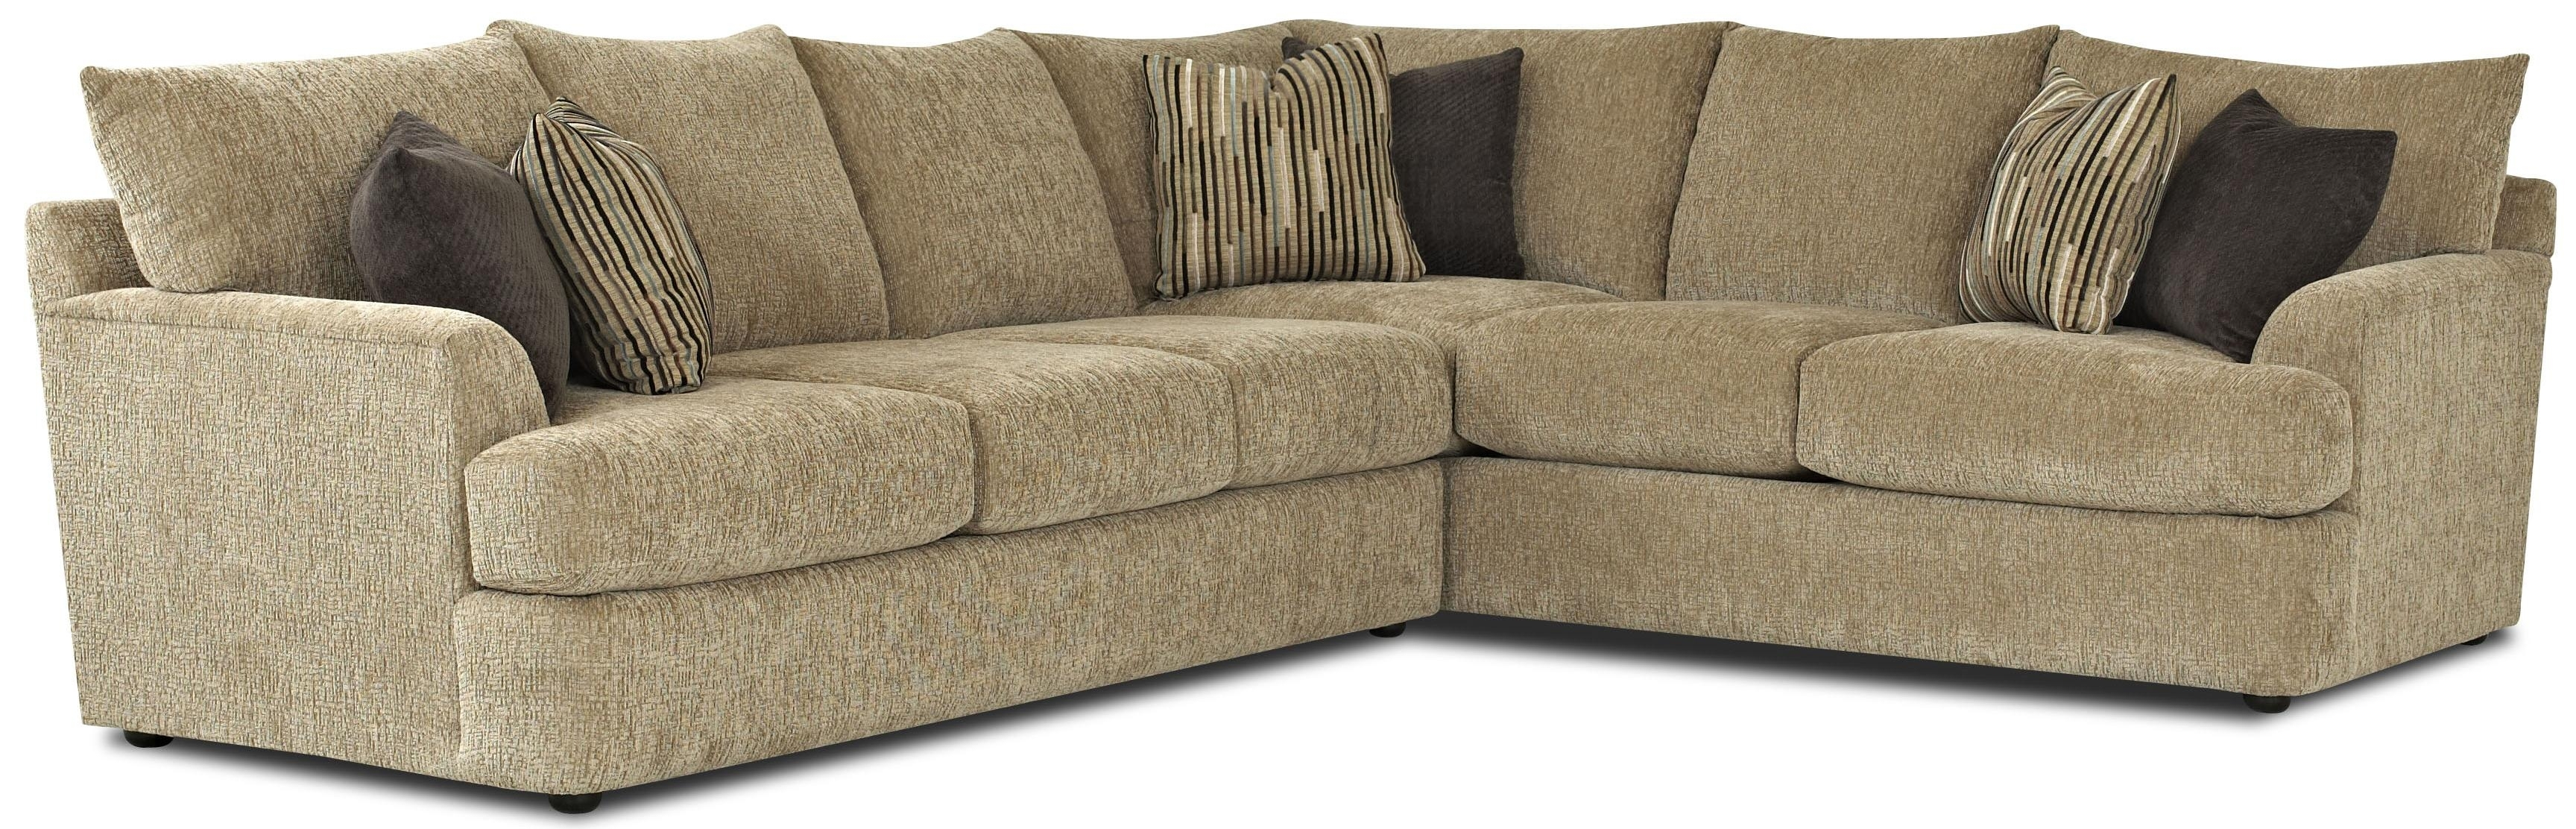 Klaussner Findley Contemporary L-Shaped Sectional Sofa | Fmg - Local pertaining to L Shaped Sectional Sofas (Image 4 of 10)